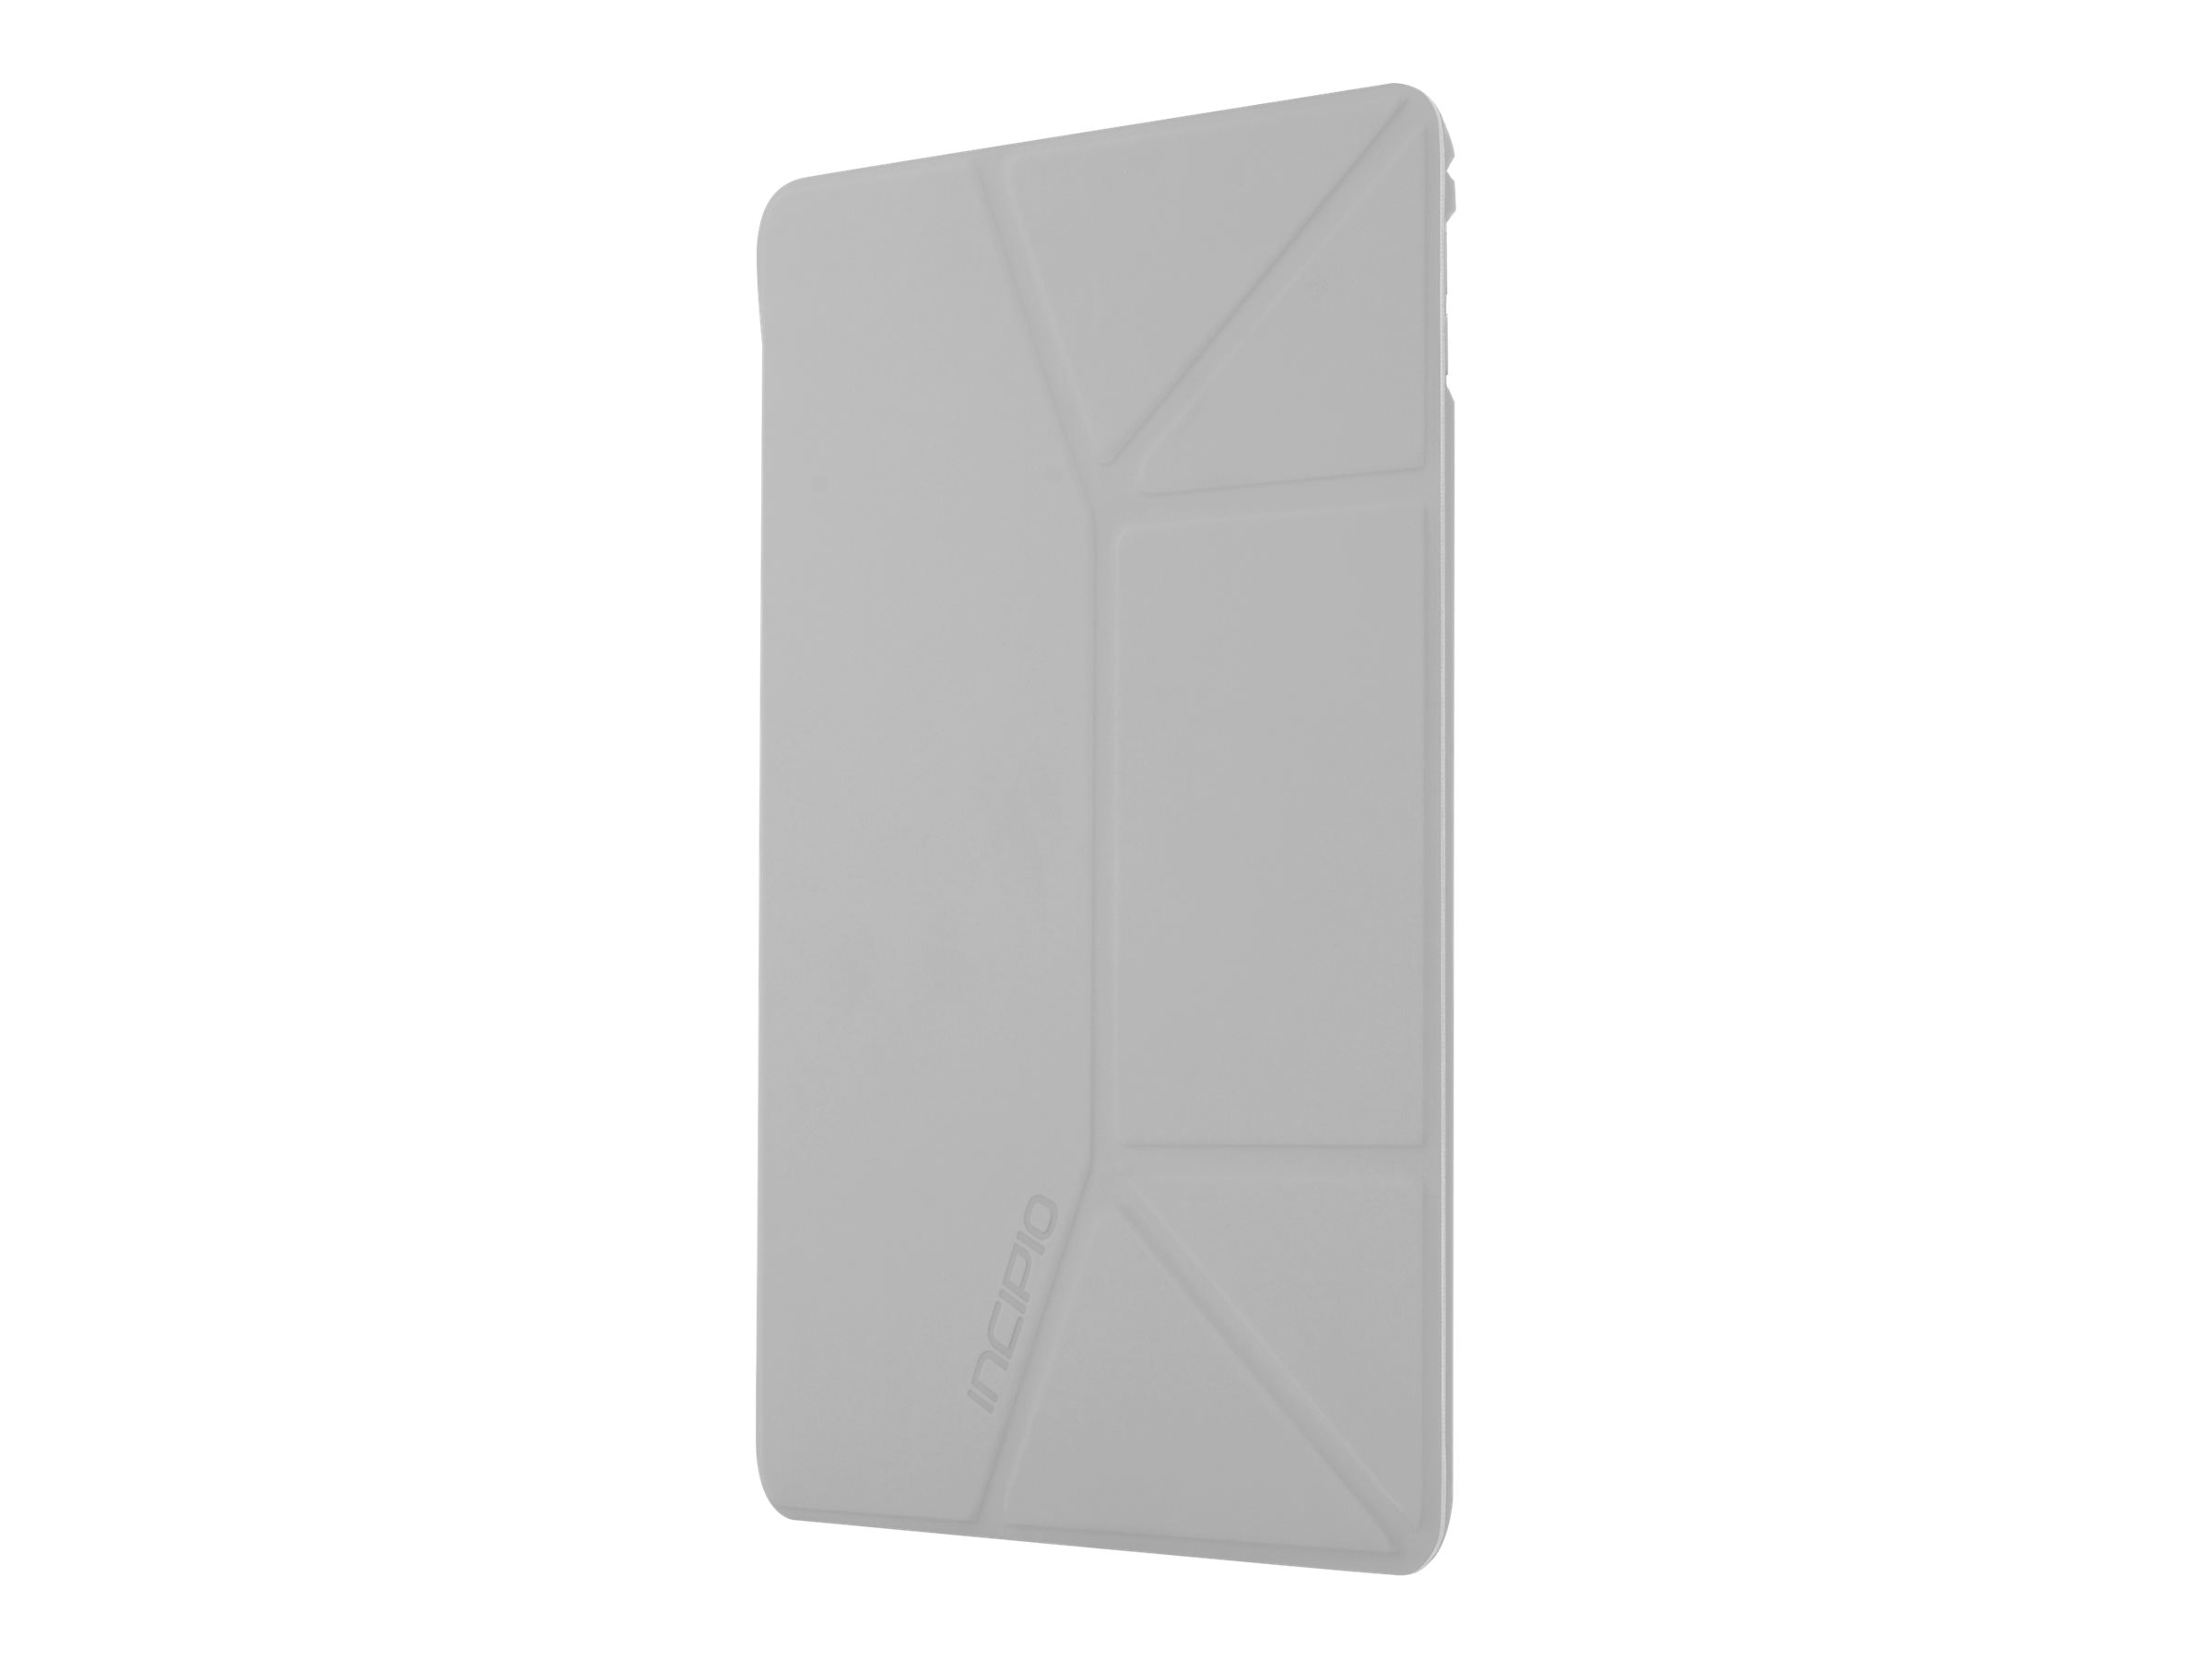 Incipio LGND Premium Hard Shell Folio for iPad Air 2, Gray